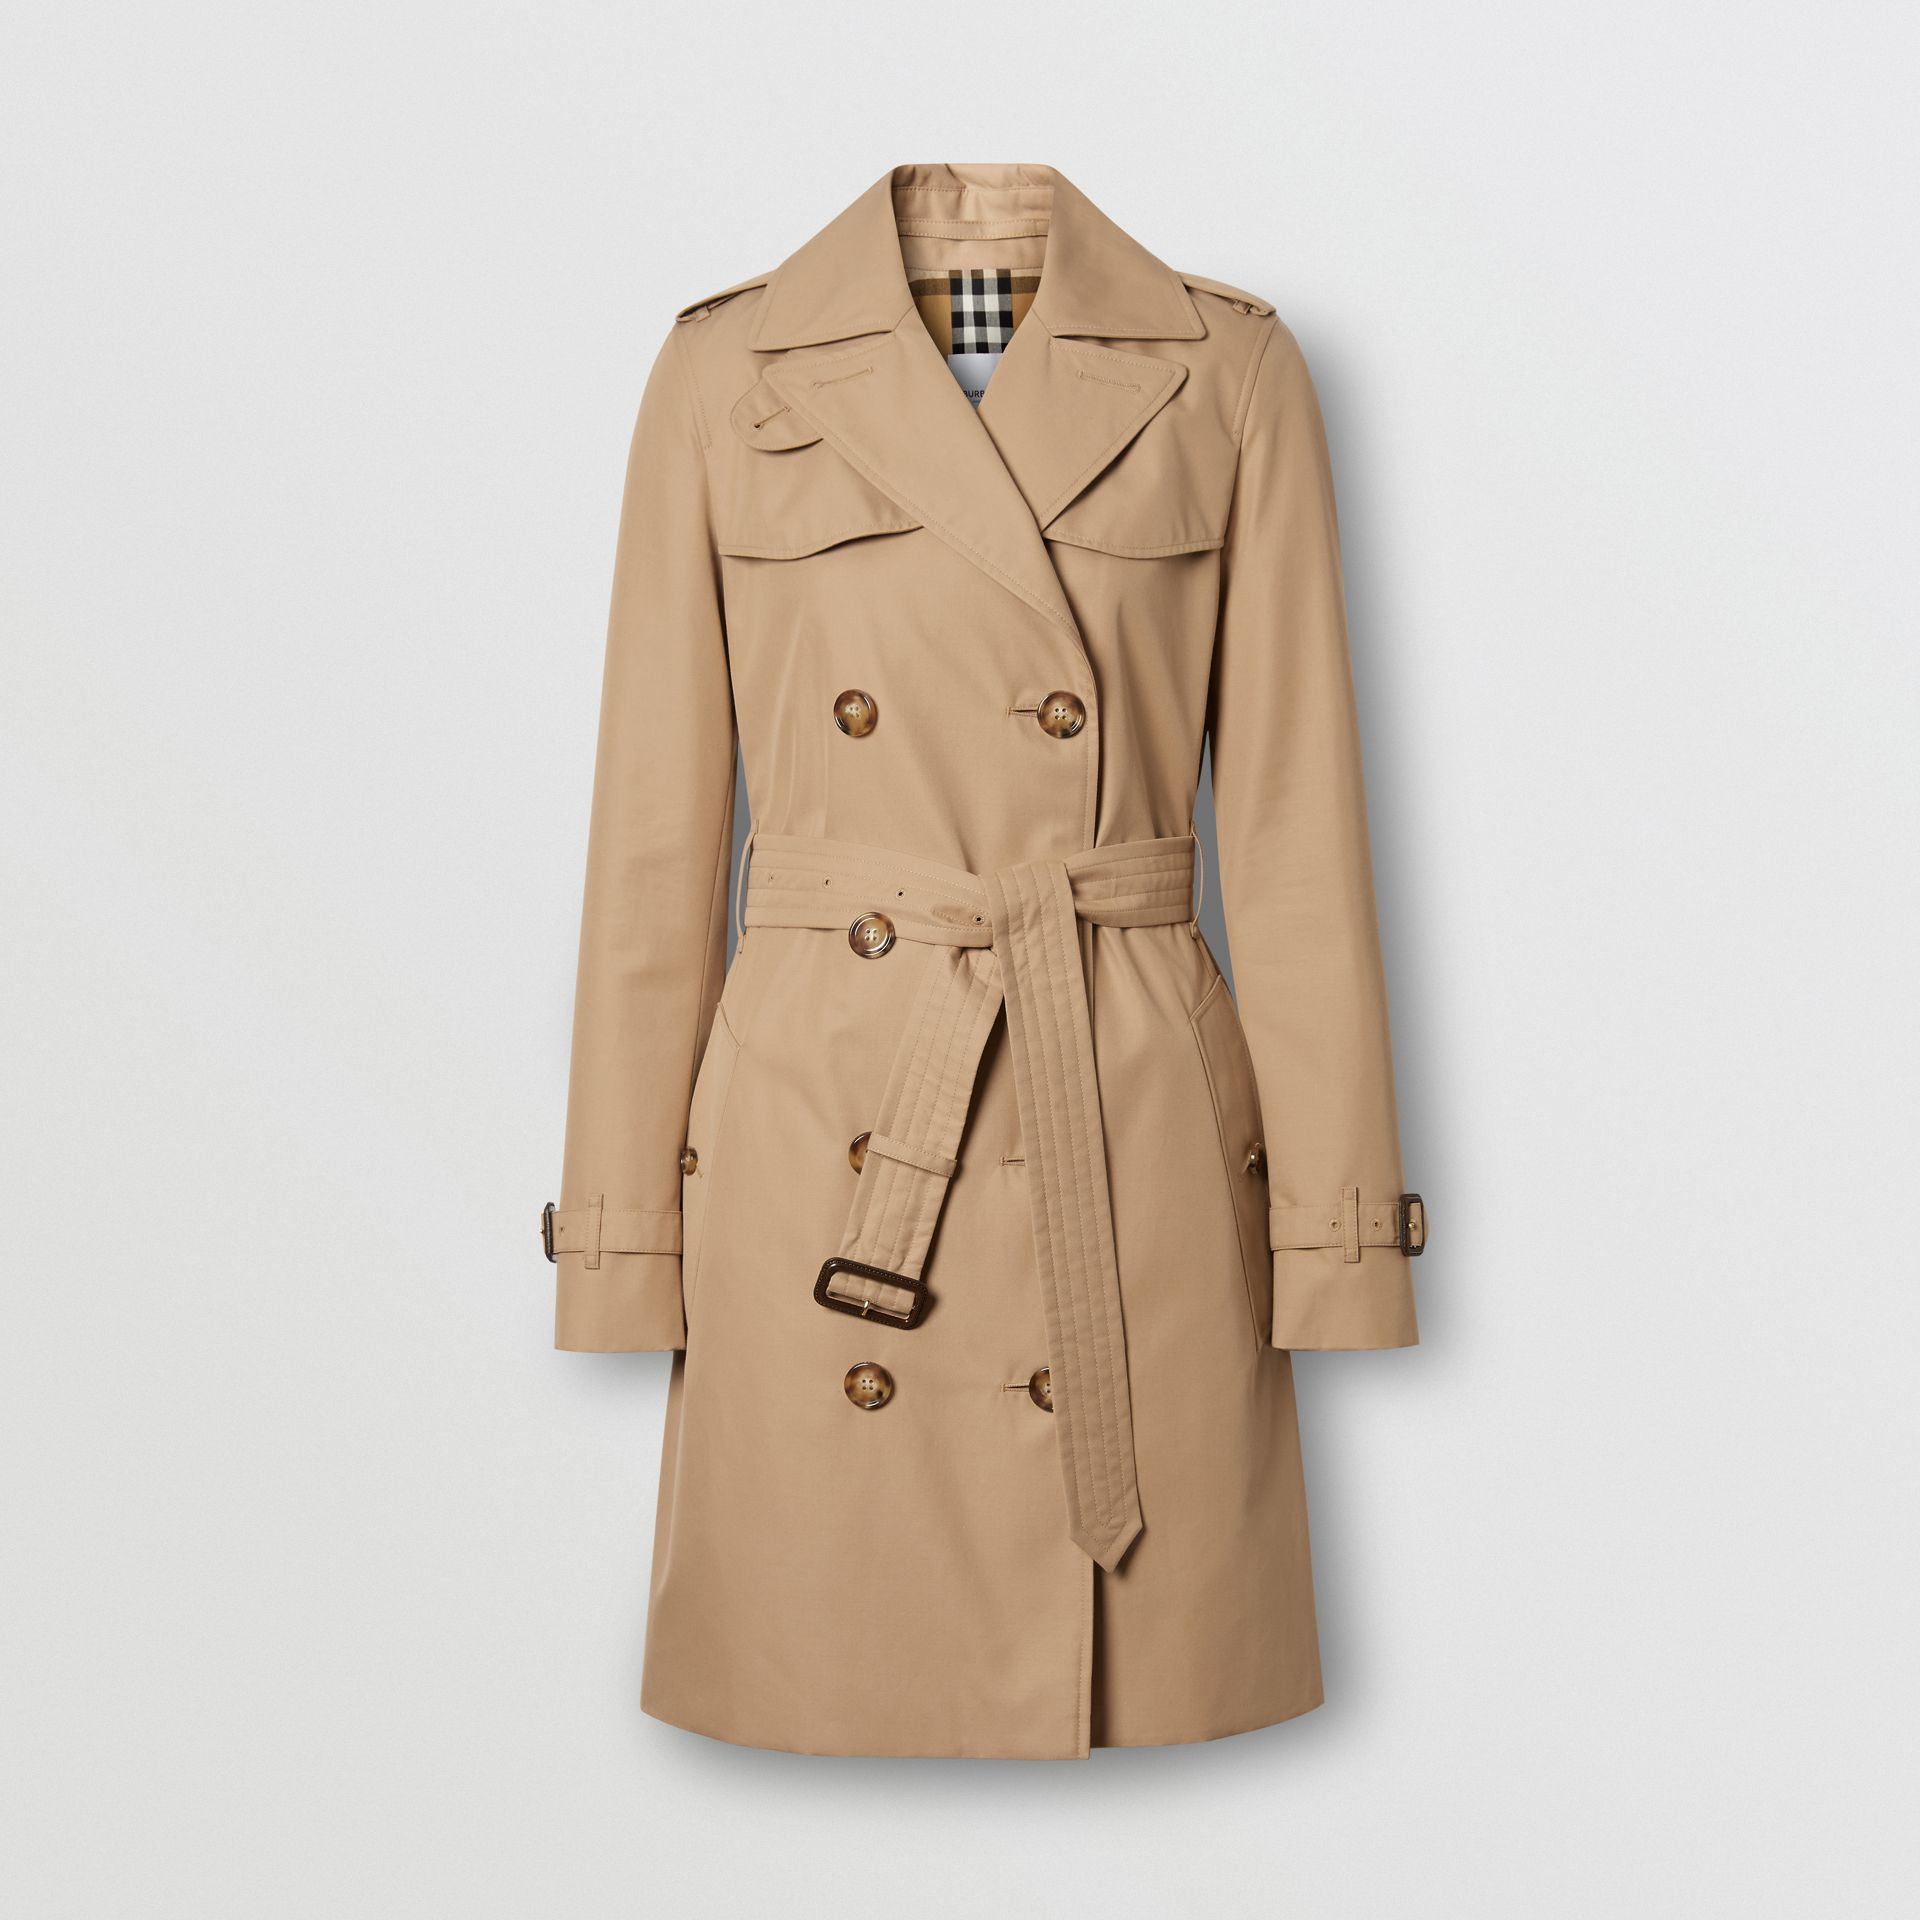 Cotton Gabardine Trench Coat in Biscuit - Women | Burberry - gallery image 3